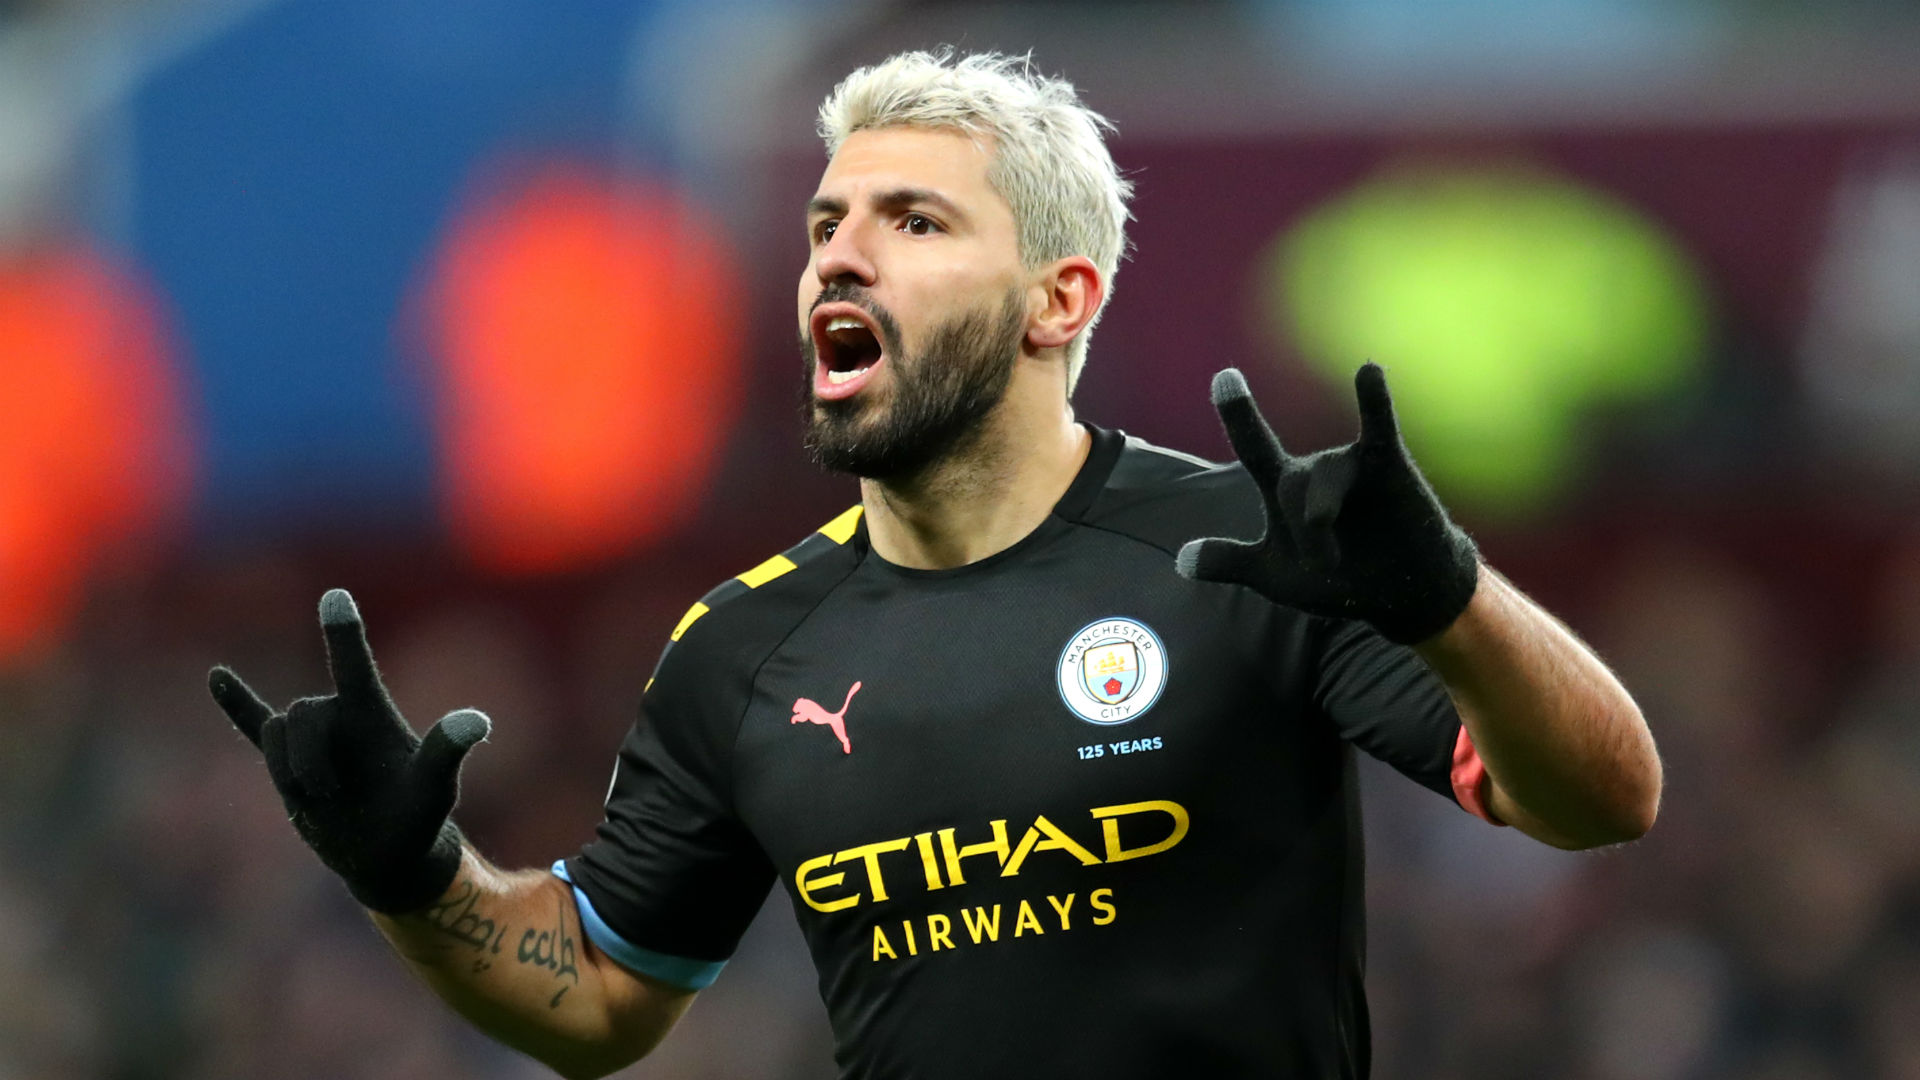 Aston Villa 1-6 Manchester City: Aguero sets two records on Drinkwater's disastrous debut